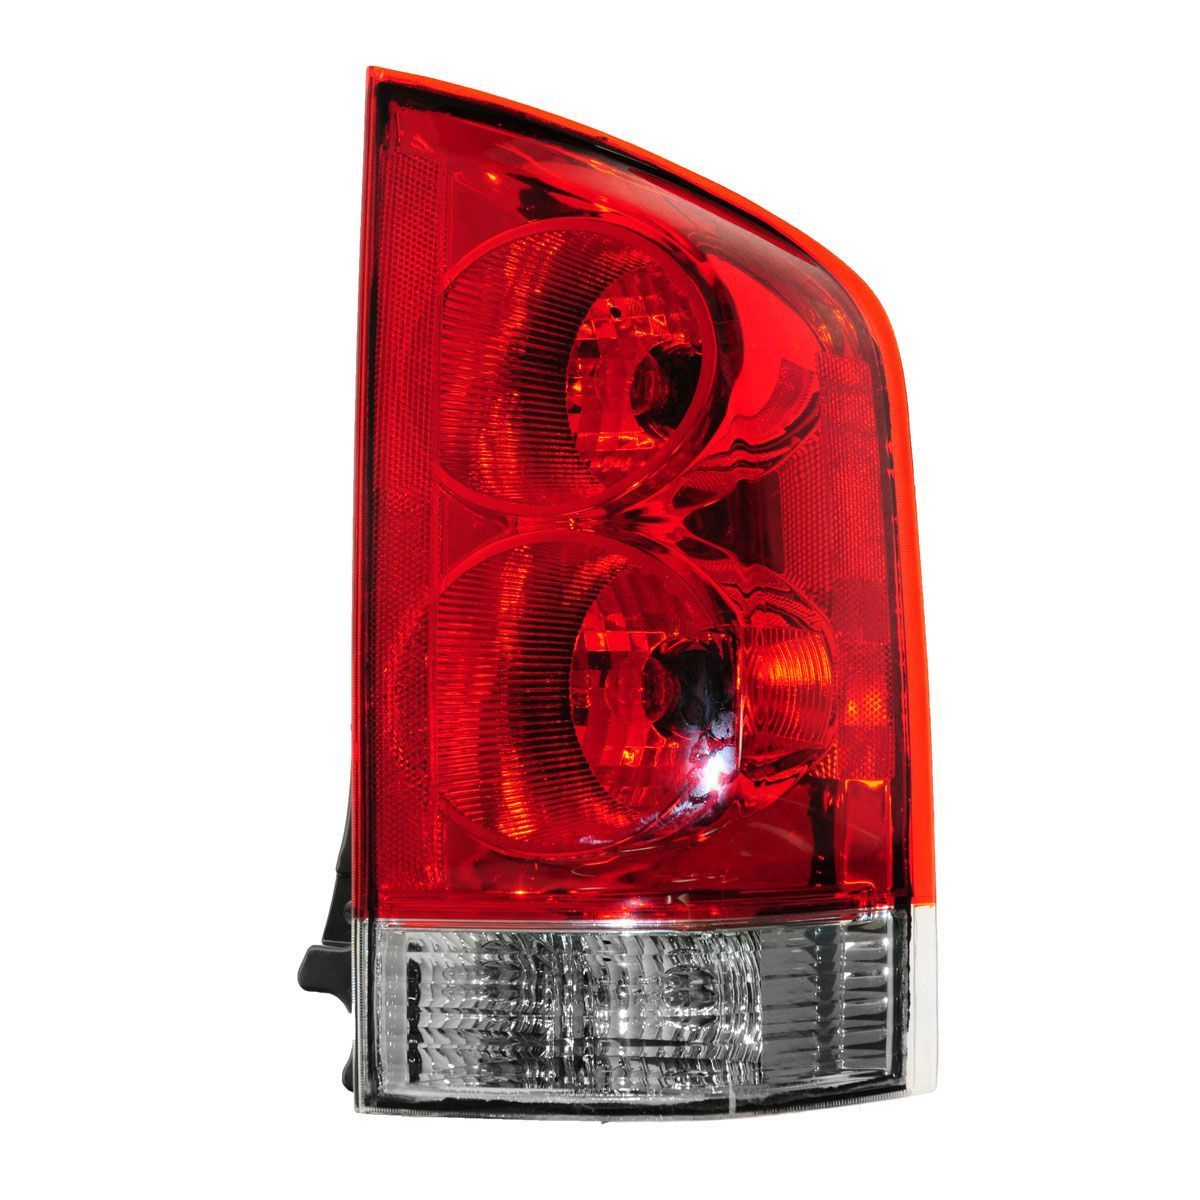 Nissan Armada 2005 2006 2007 2008 2009 tail light right passenger